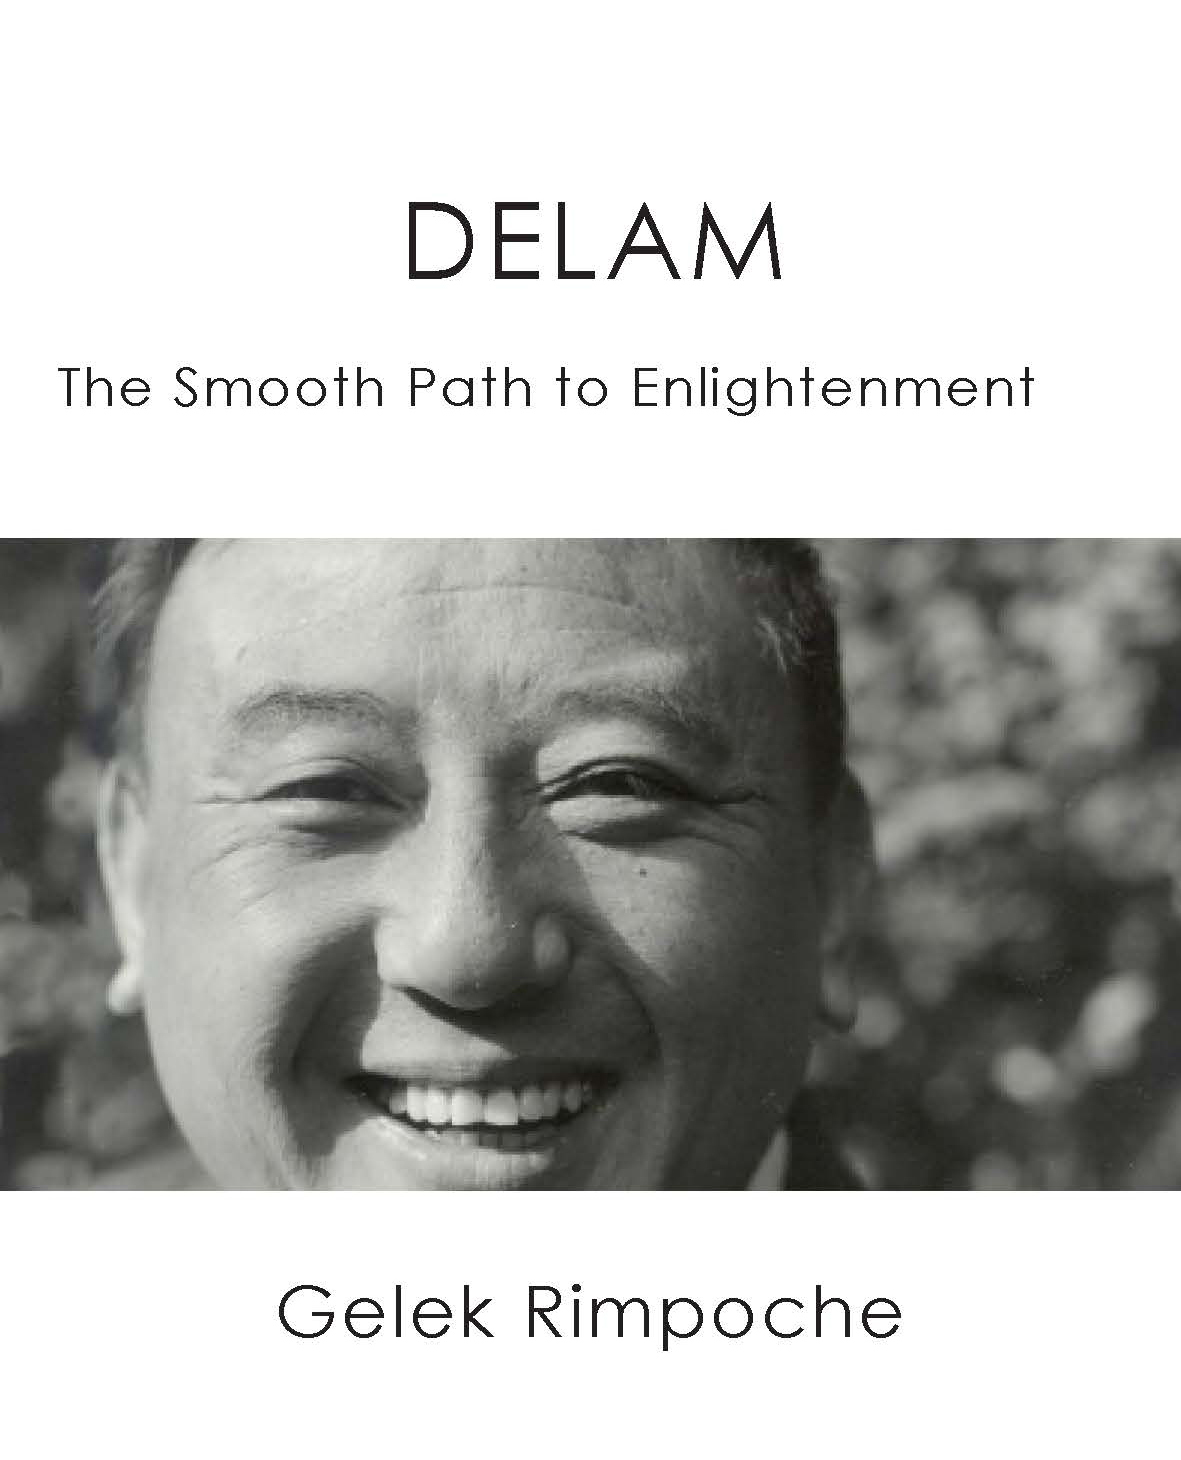 Delam – The Smooth Path to Enlightenment